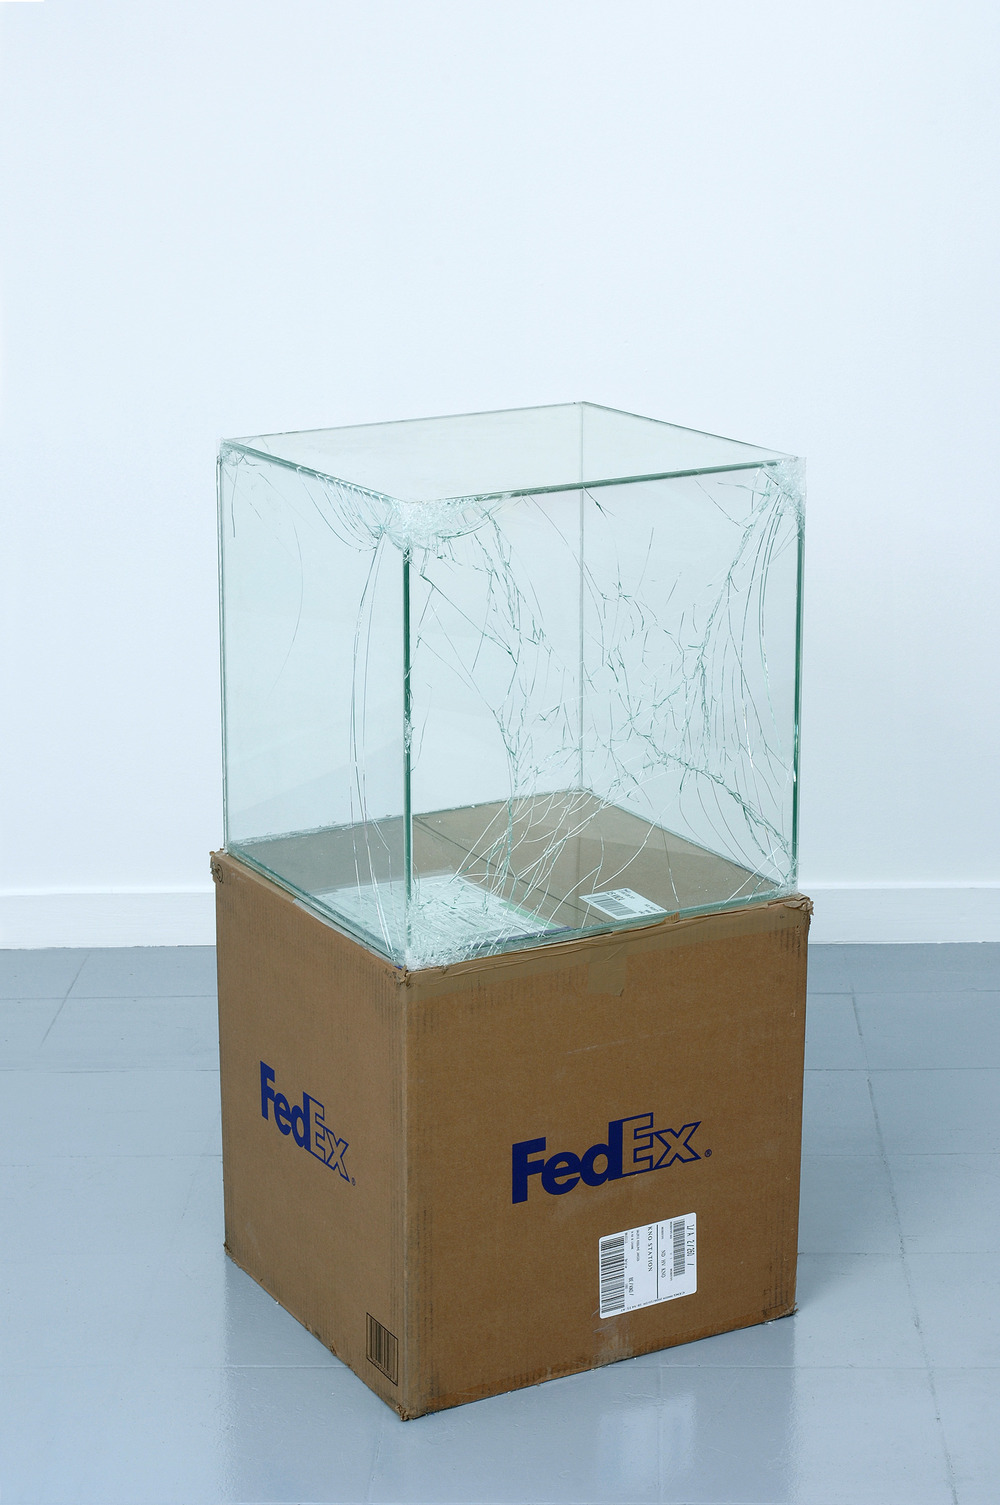 FedEx Large Kraft Box 2005 FEDEX 330508 REV 10/05 SSCC, International Priority, Los Angeles–Brussels trk#865282057964, October 27–30, 2008, International Priority, Brussels–Los Angeles trk#866071746385, Janurary 8–9, 2009, Standard Overnight, Los Angeles–New York trk#872632033108, April 29–30, 2010, Standard Overnight, New York–Los Angeles trk#796210730703, September 2–3, 2010, Priority Overnight, Los Angeles–New York trk#794583197877, March 28–29, 2011, Priority Overnight, New York–Los Angeles trk#611849858596, January 13–14, 2015    2008–   Laminated glass, FedEx shipping box, accrued FedEx shipping and tracking labels, silicone, metal, and tape  20 x 20 x 20 inches   Industrial Pictures, 2008